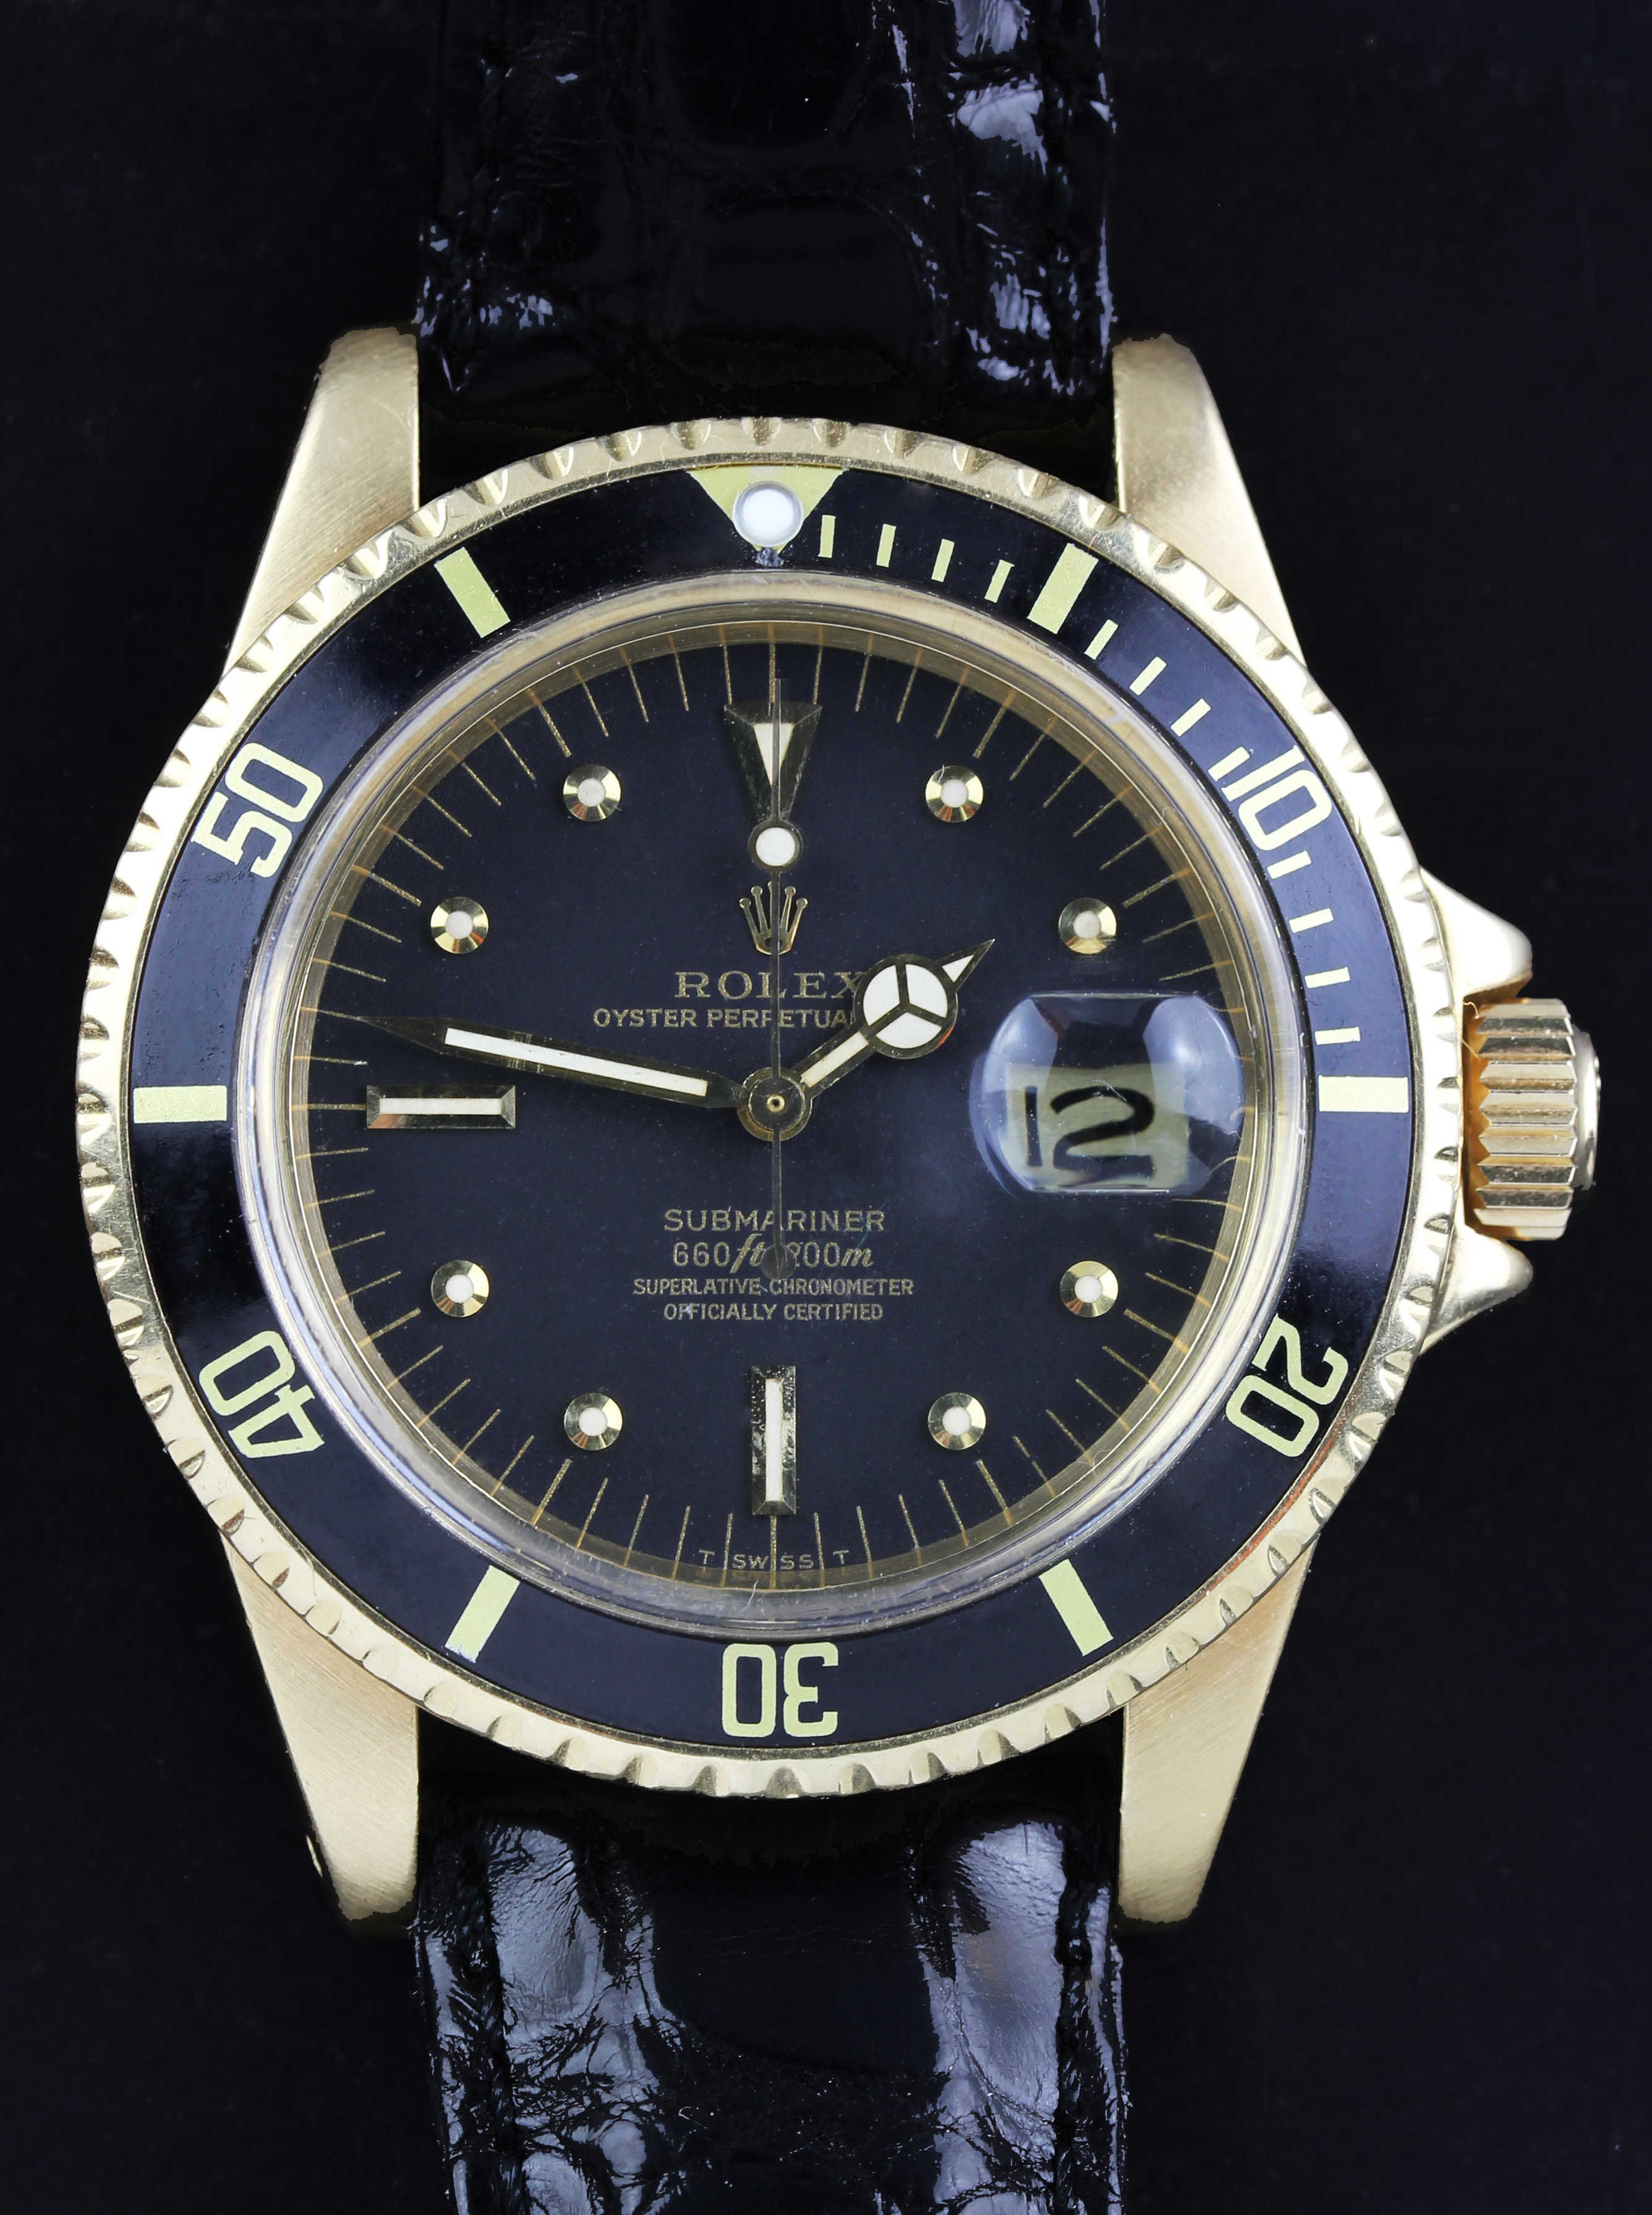 ROLEX Submariner ref. 1680 in gold from 1974